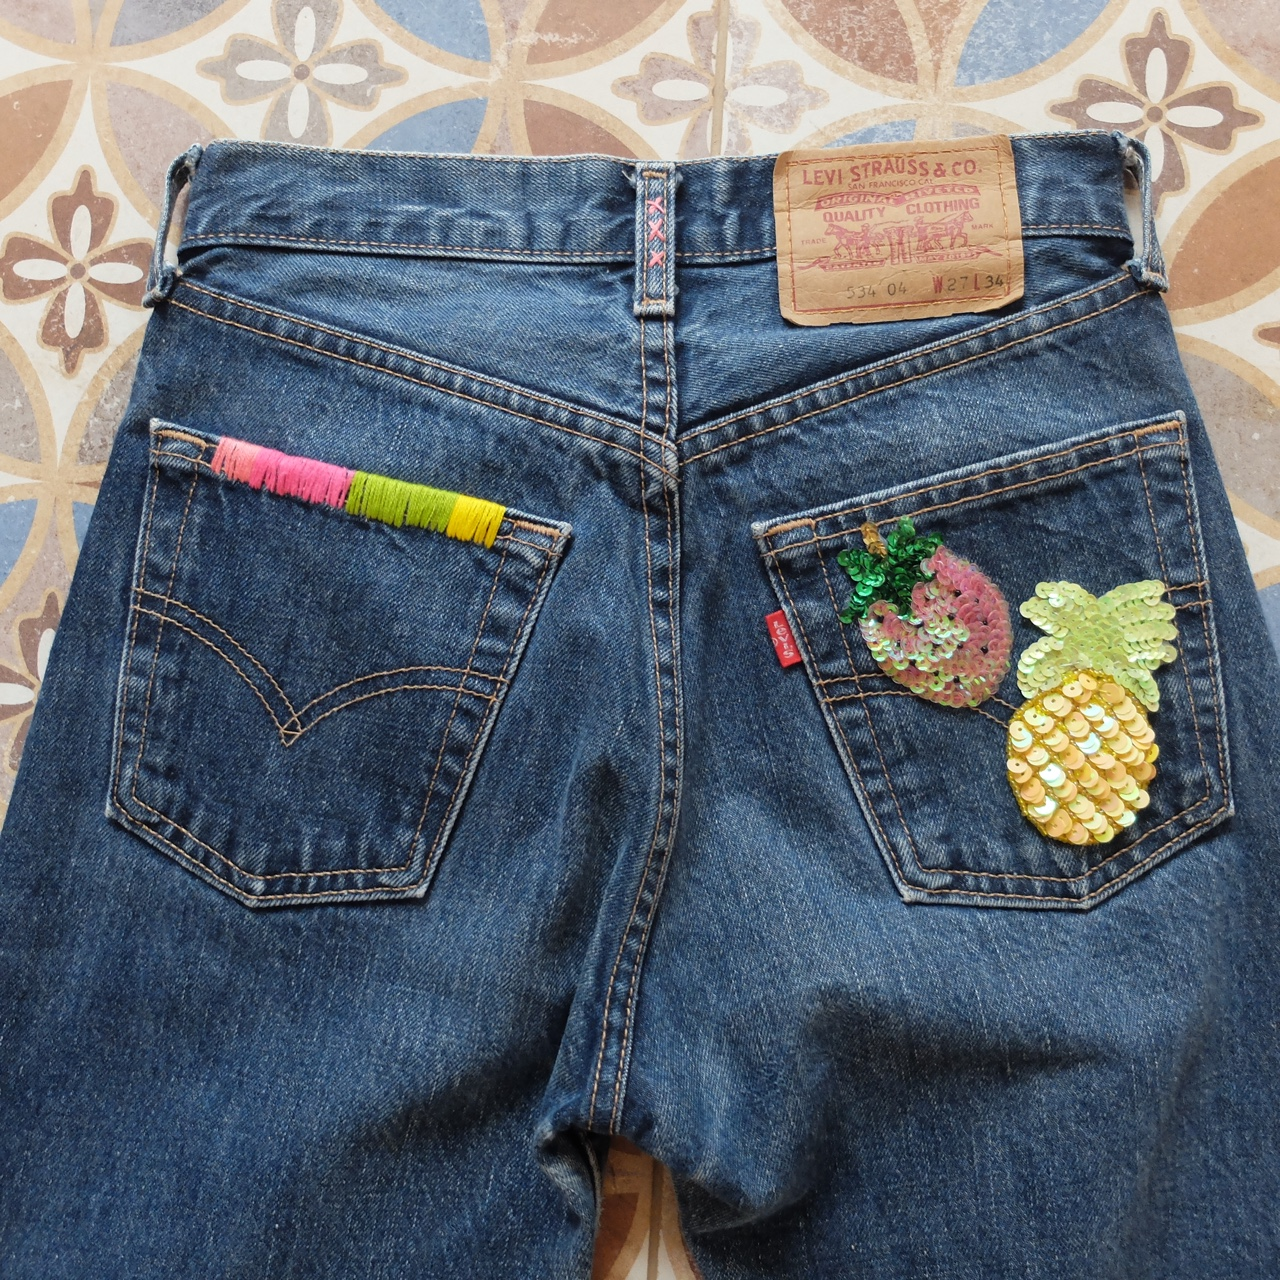 Reworked vintage hand embroidered levi jeans get